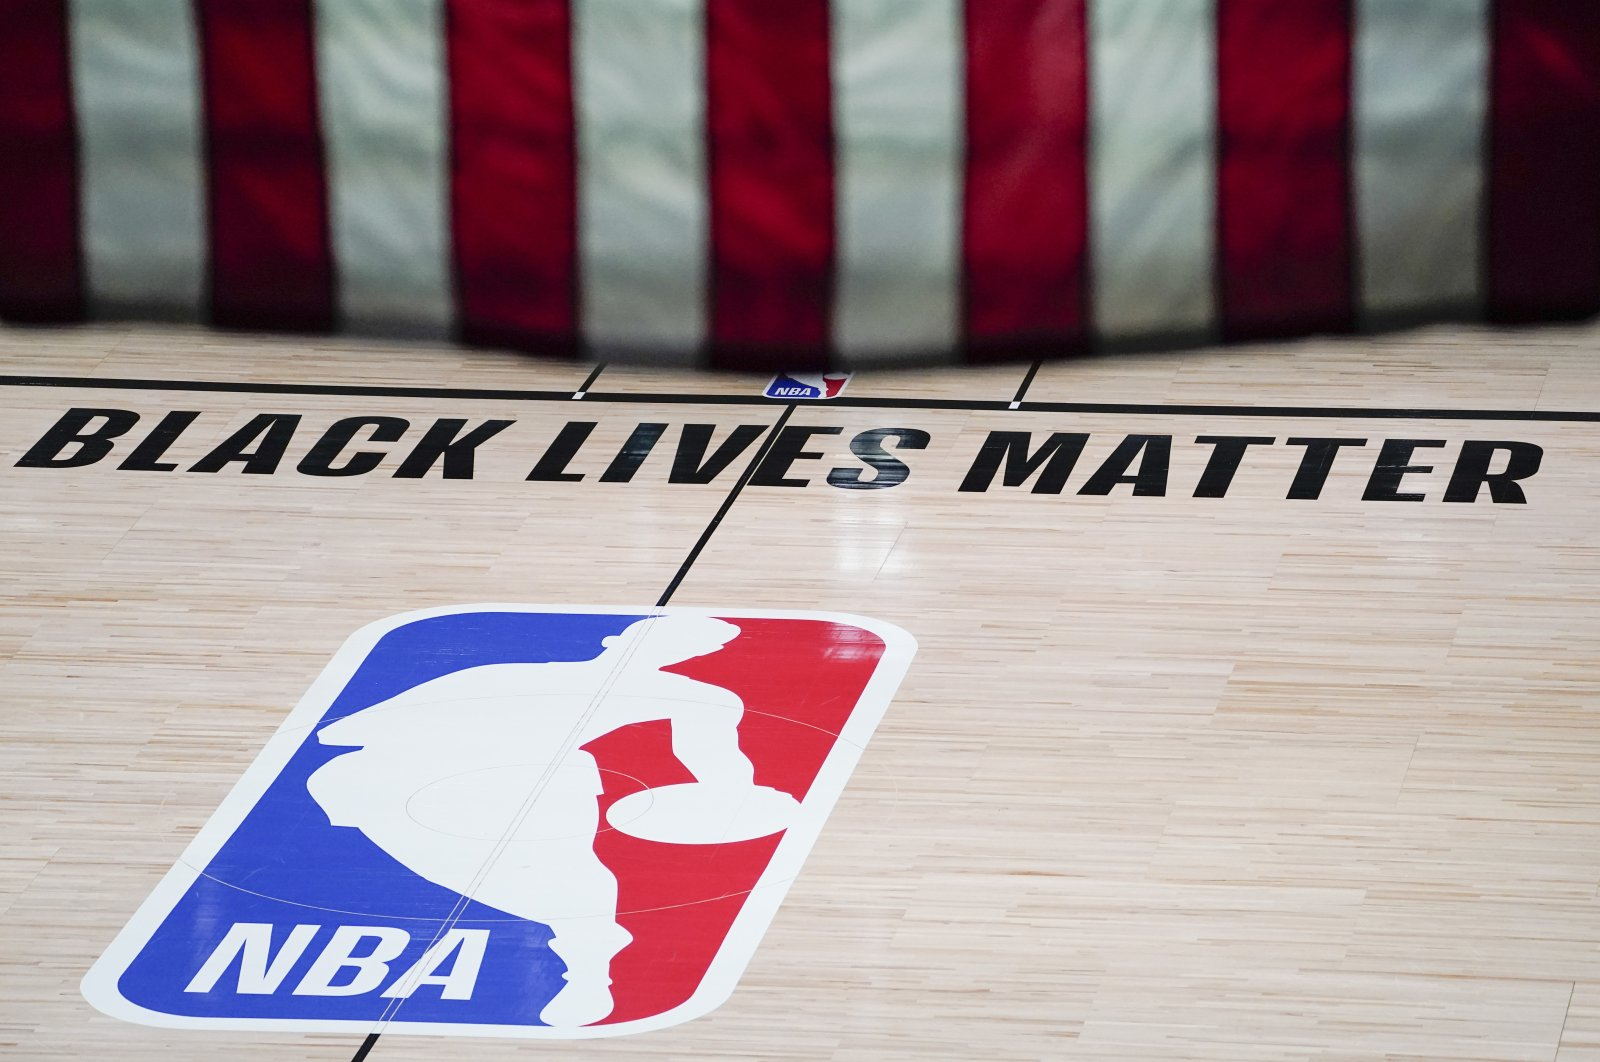 Black Lives Matter is displayed near the NBA logo in an empty basketball arena, Florida, U.S., Aug. 28, 2020. (AP Photo)